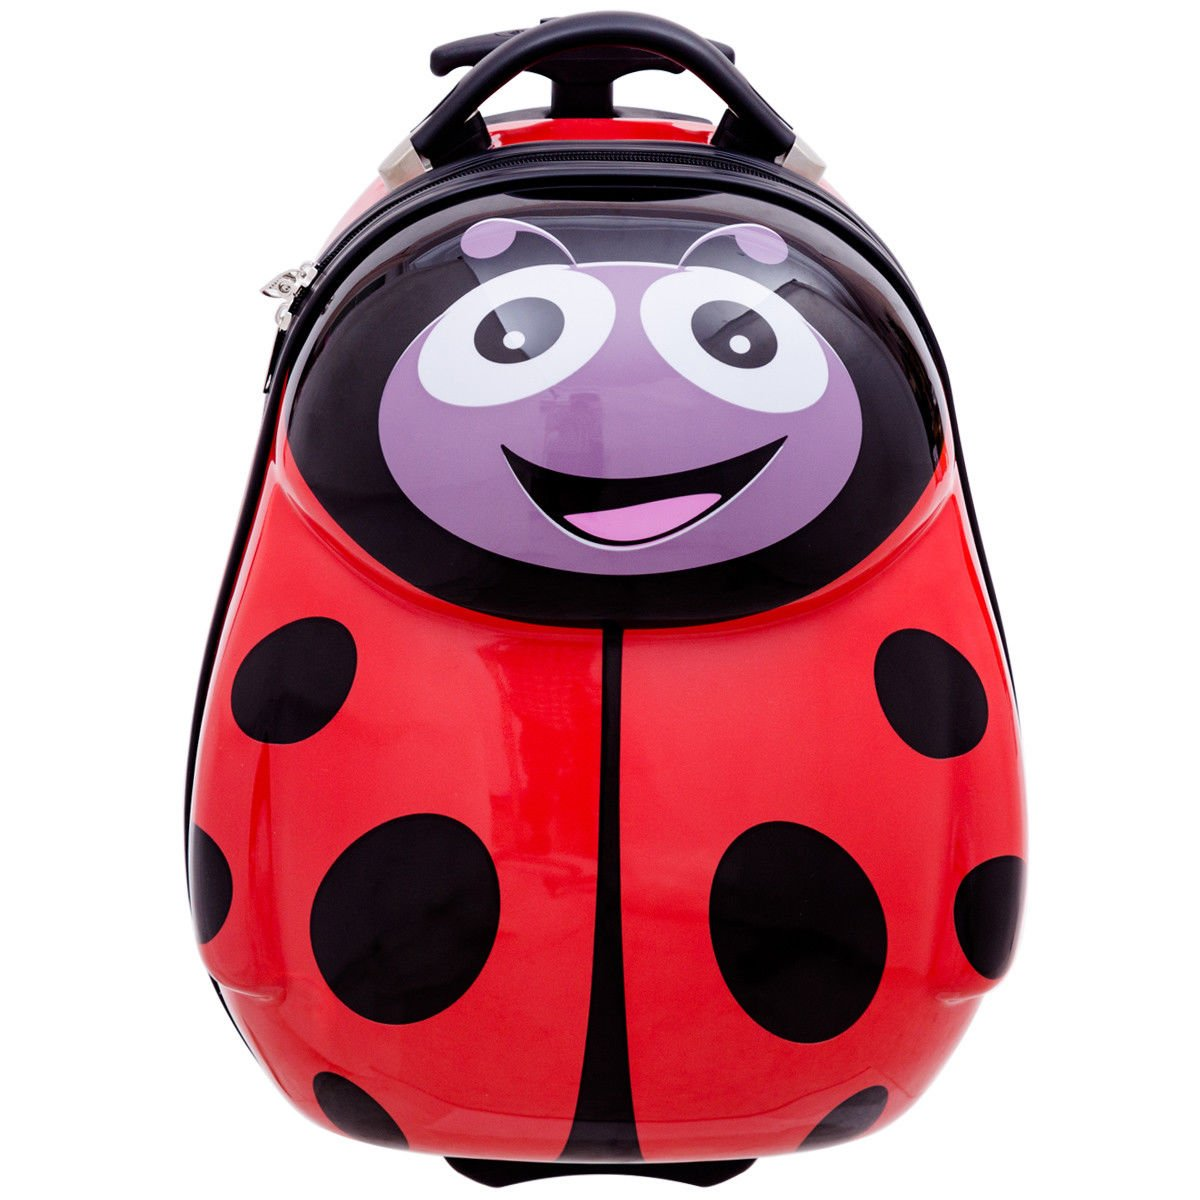 Goplus 2Pc 13'' 19'' Kids Carry On Luggage Set Travel Trolley Suitcase (Ladybug) by Goplus (Image #3)